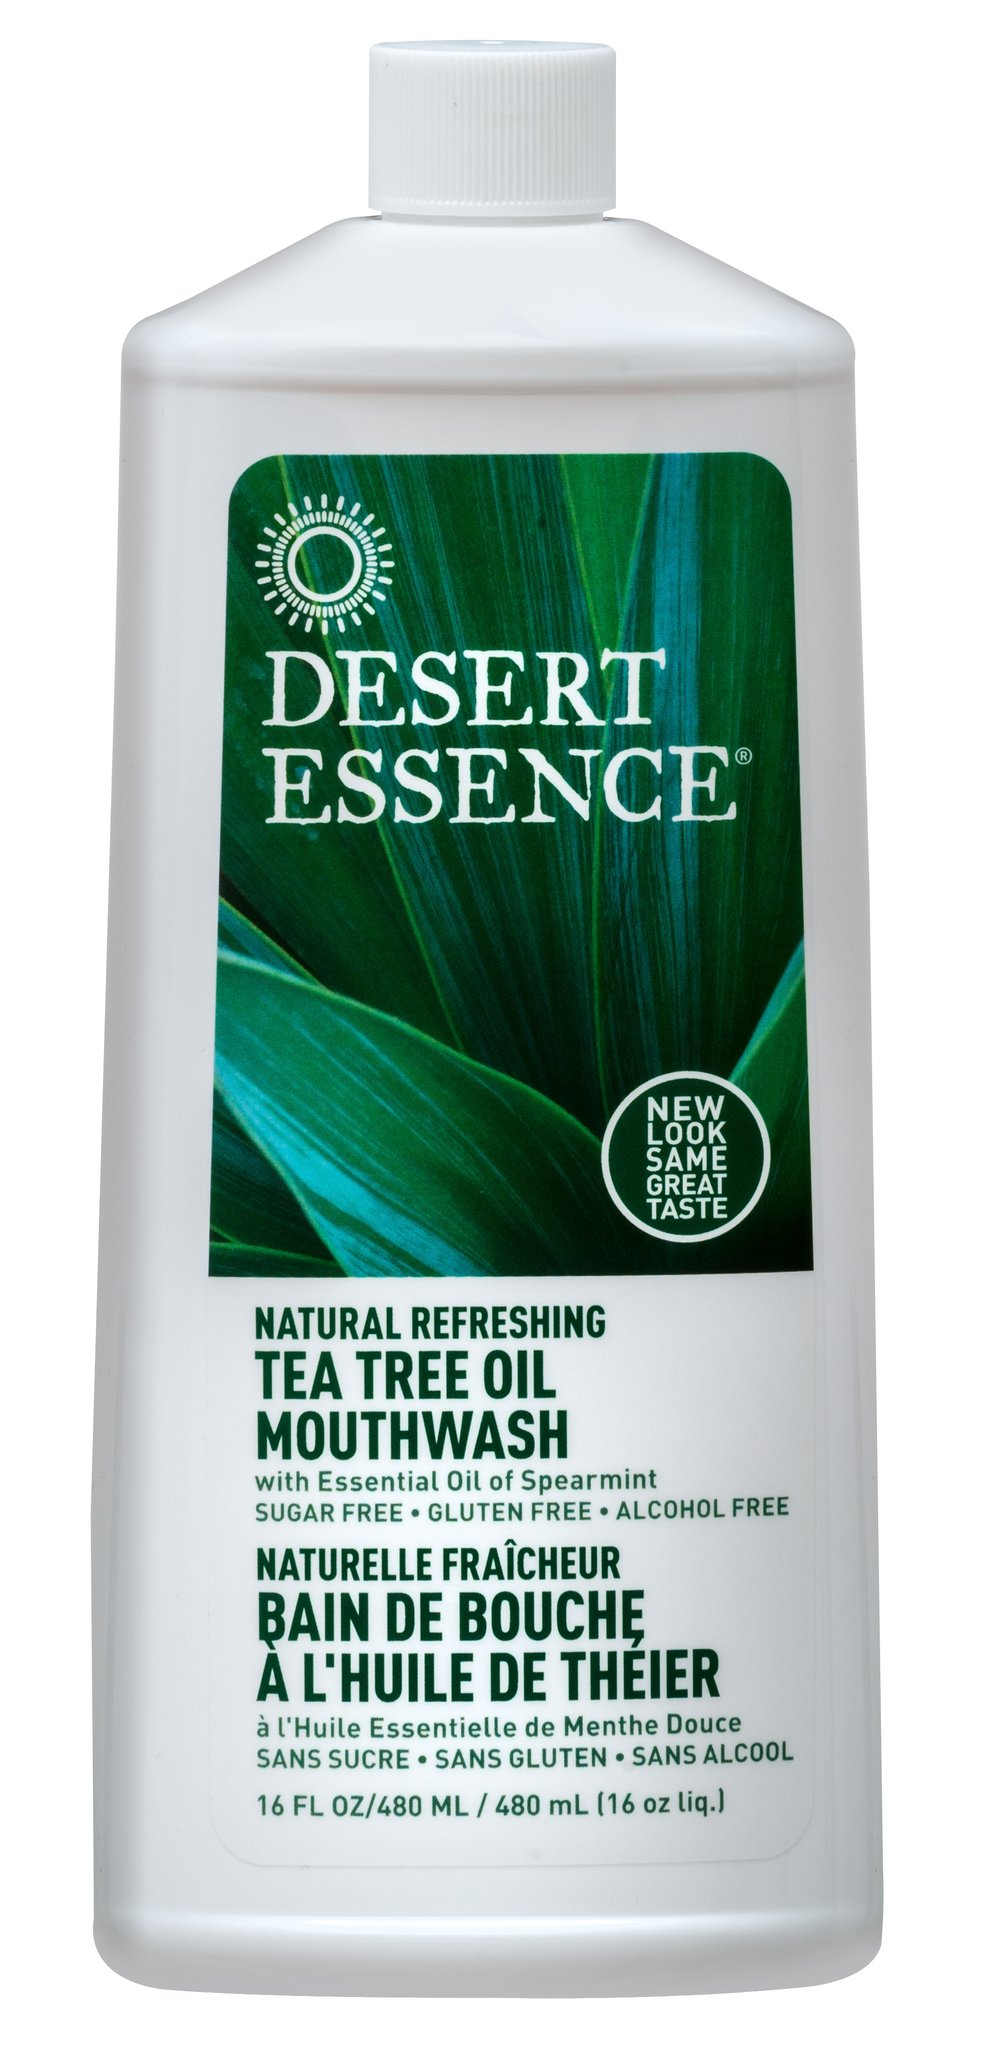 Tea Tree Oil Mouthwash With Spearmint